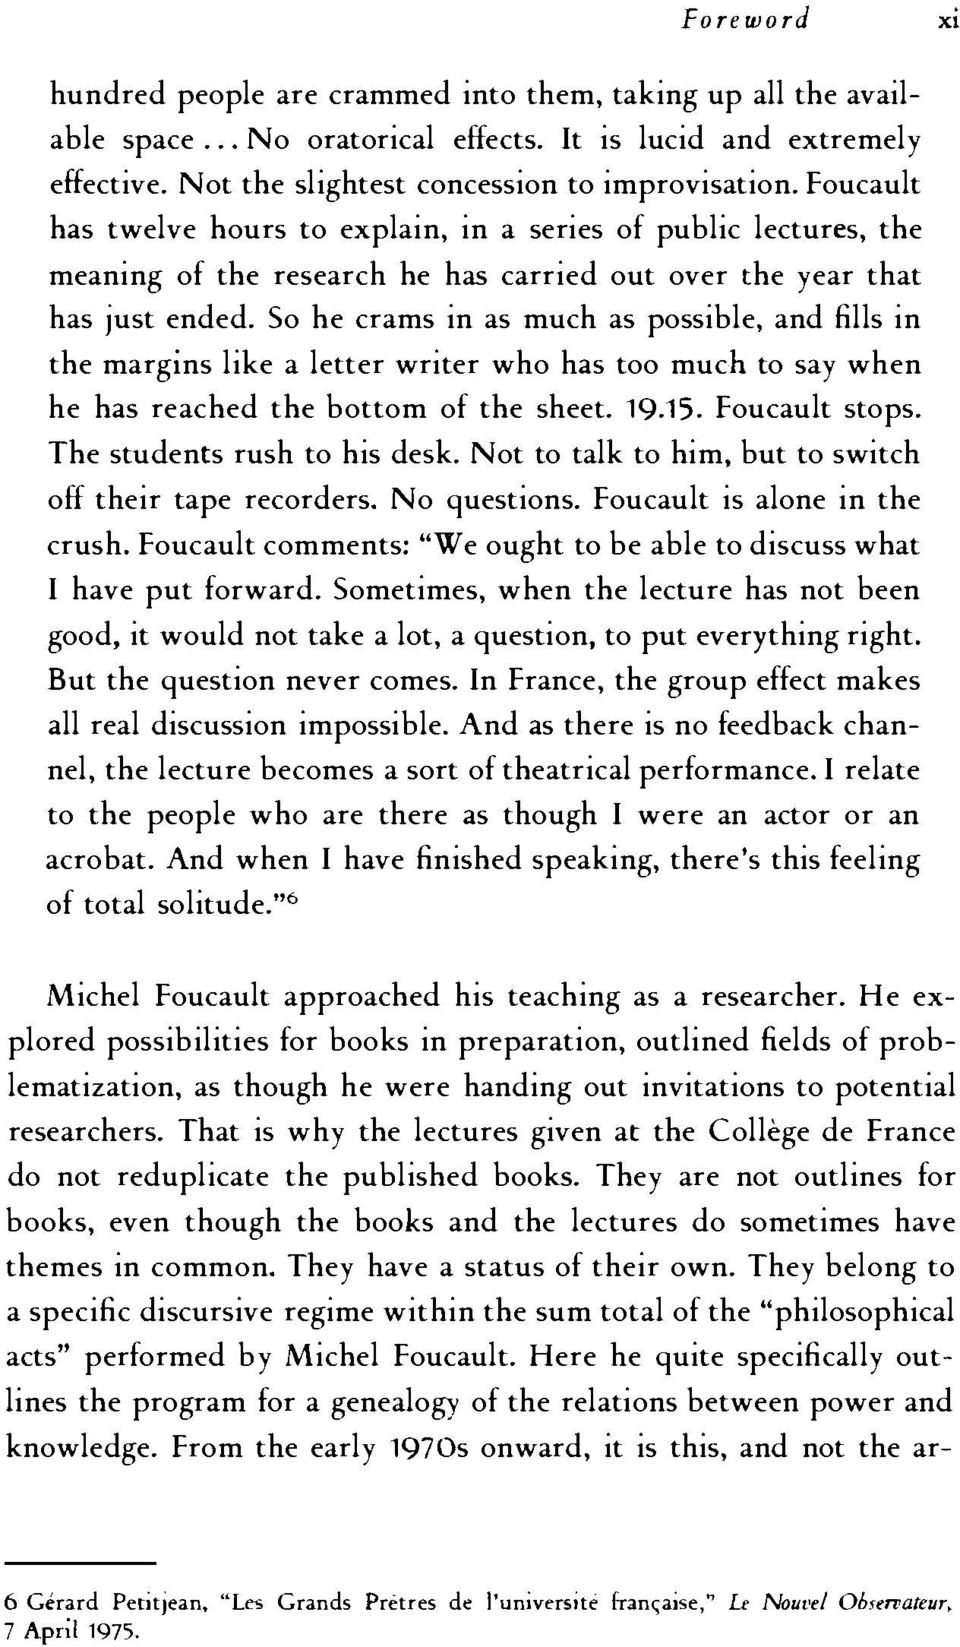 So he crams in as much as possible, and fills in the margins like a letter writer who has too much to say when he has reached the bottom of the sheet. 19.15. Foucault stops.